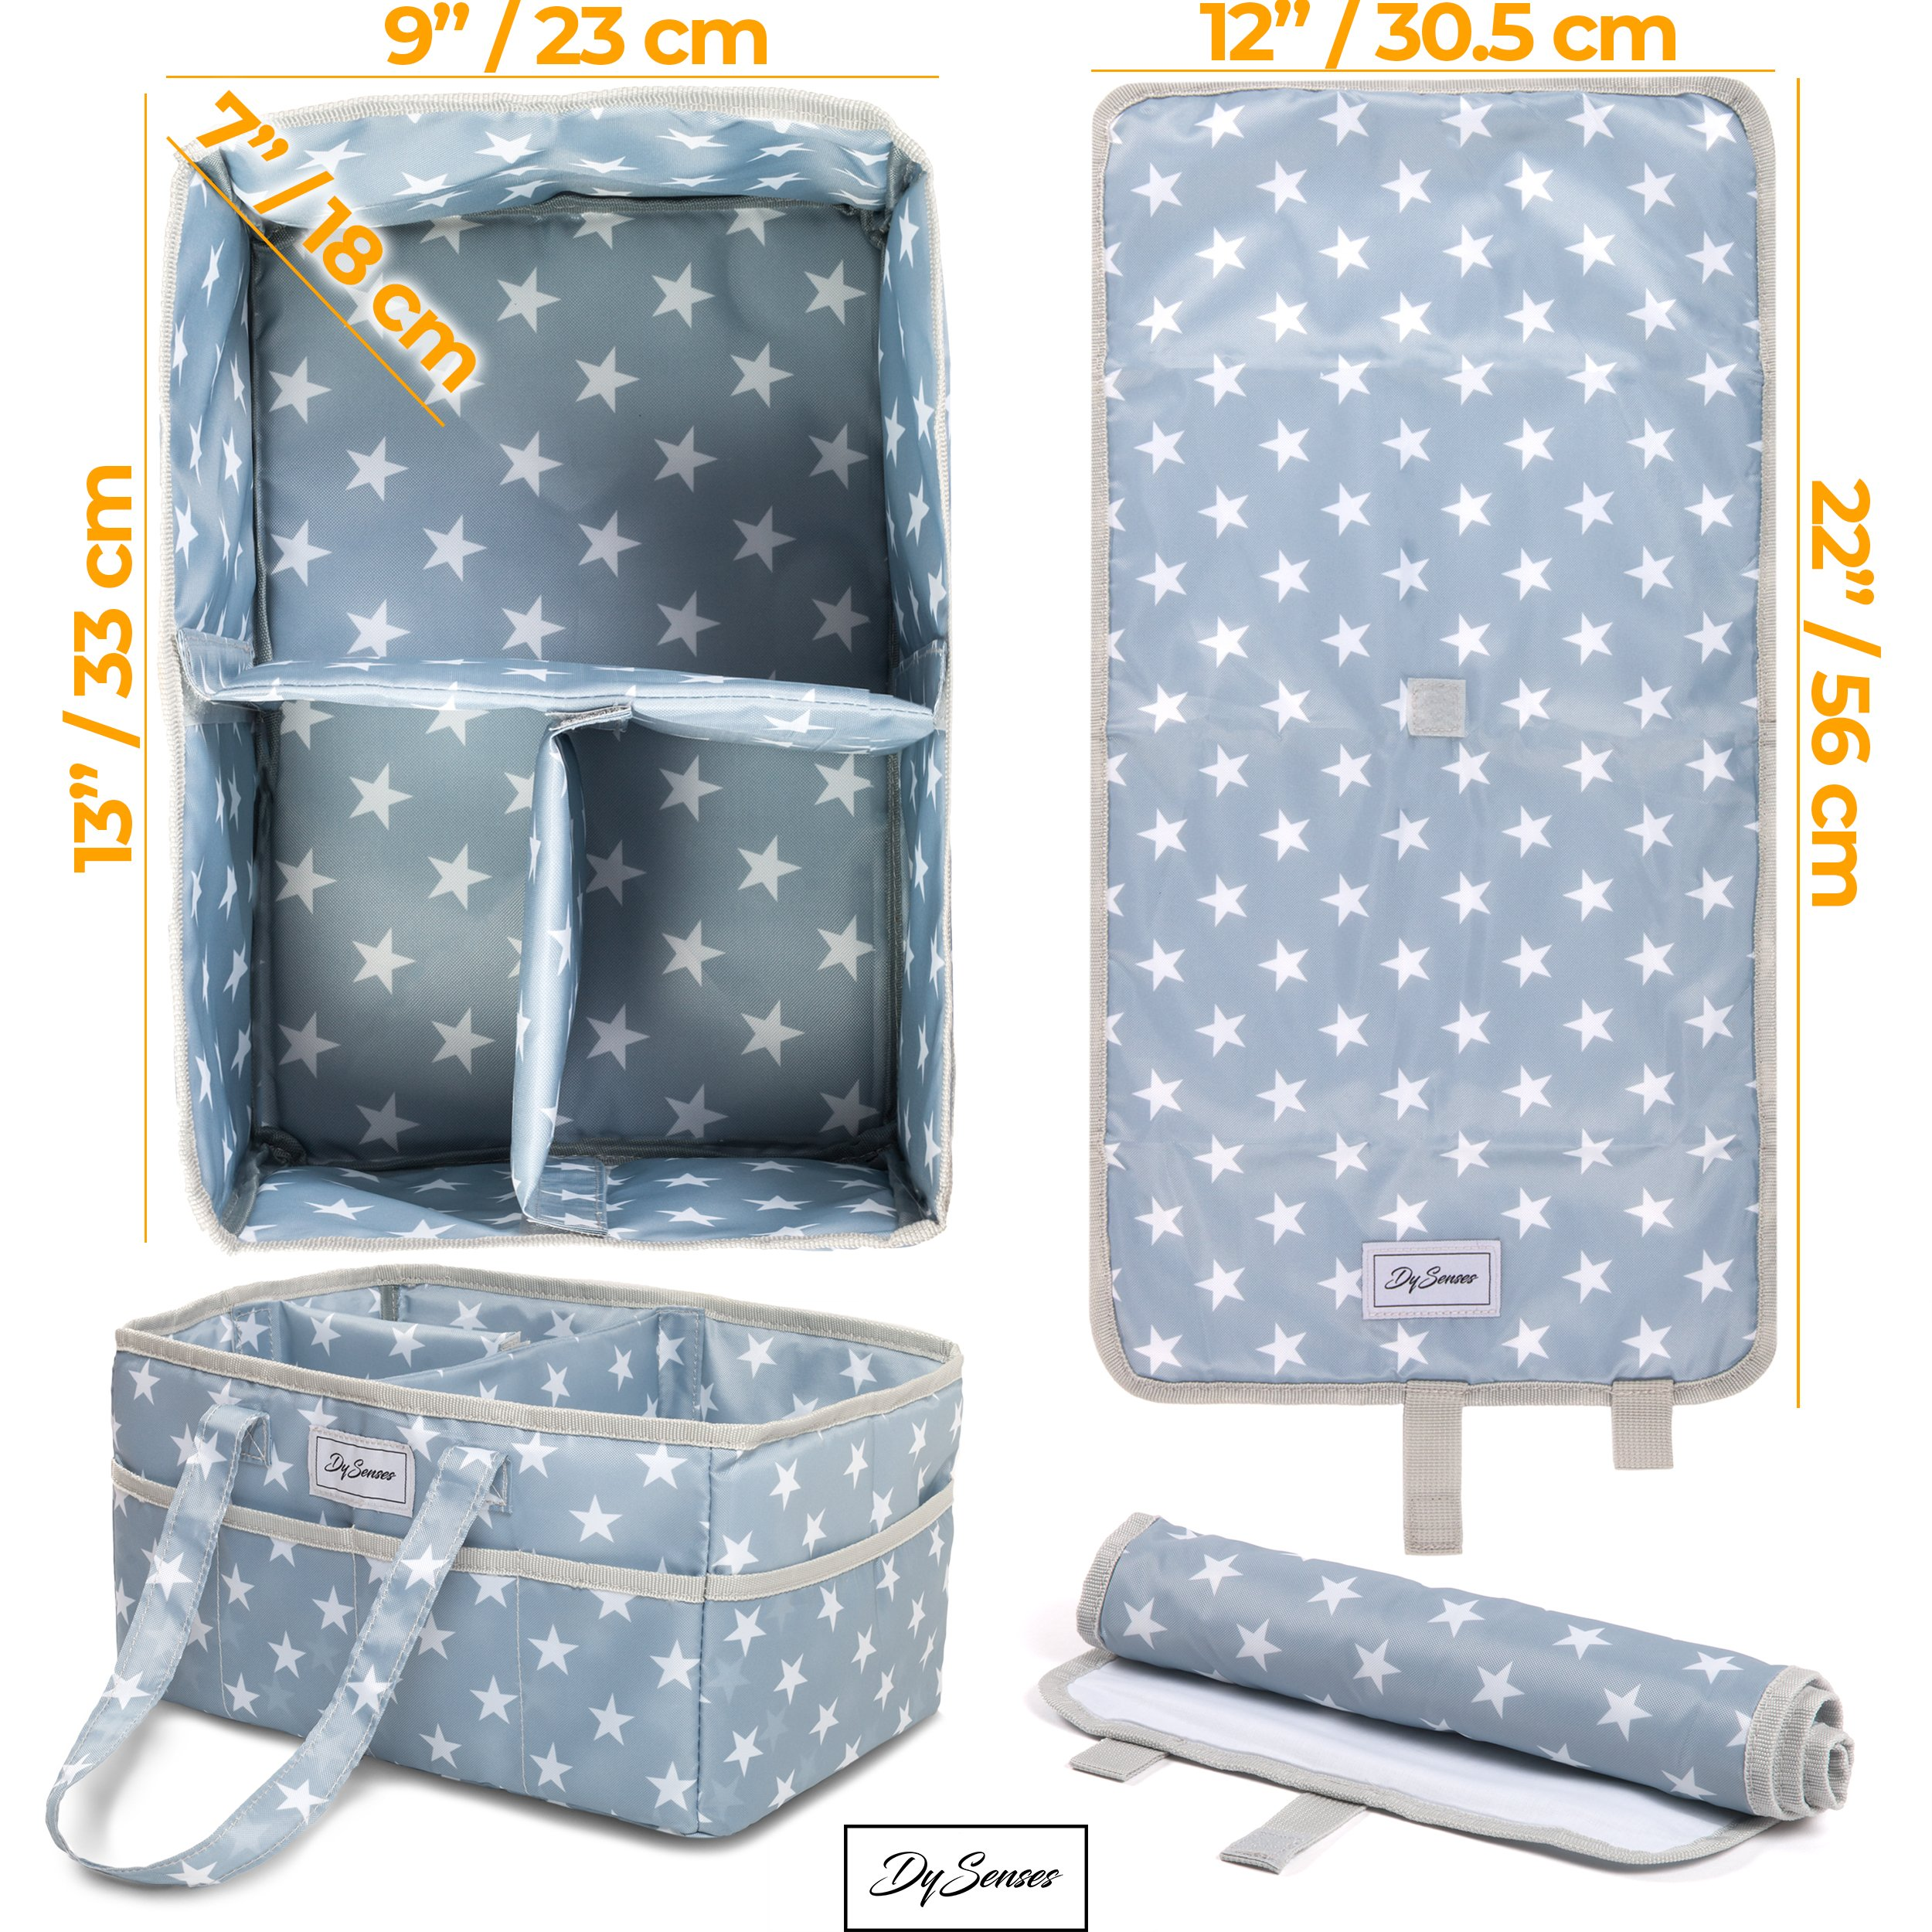 Diaper Storage Caddy Nursery Organizer | Grey Baby Diaper Caddy & Portable Changing Pad | Suitable for Car Travel Picnic & Nursing Station by DySenses (Image #4)